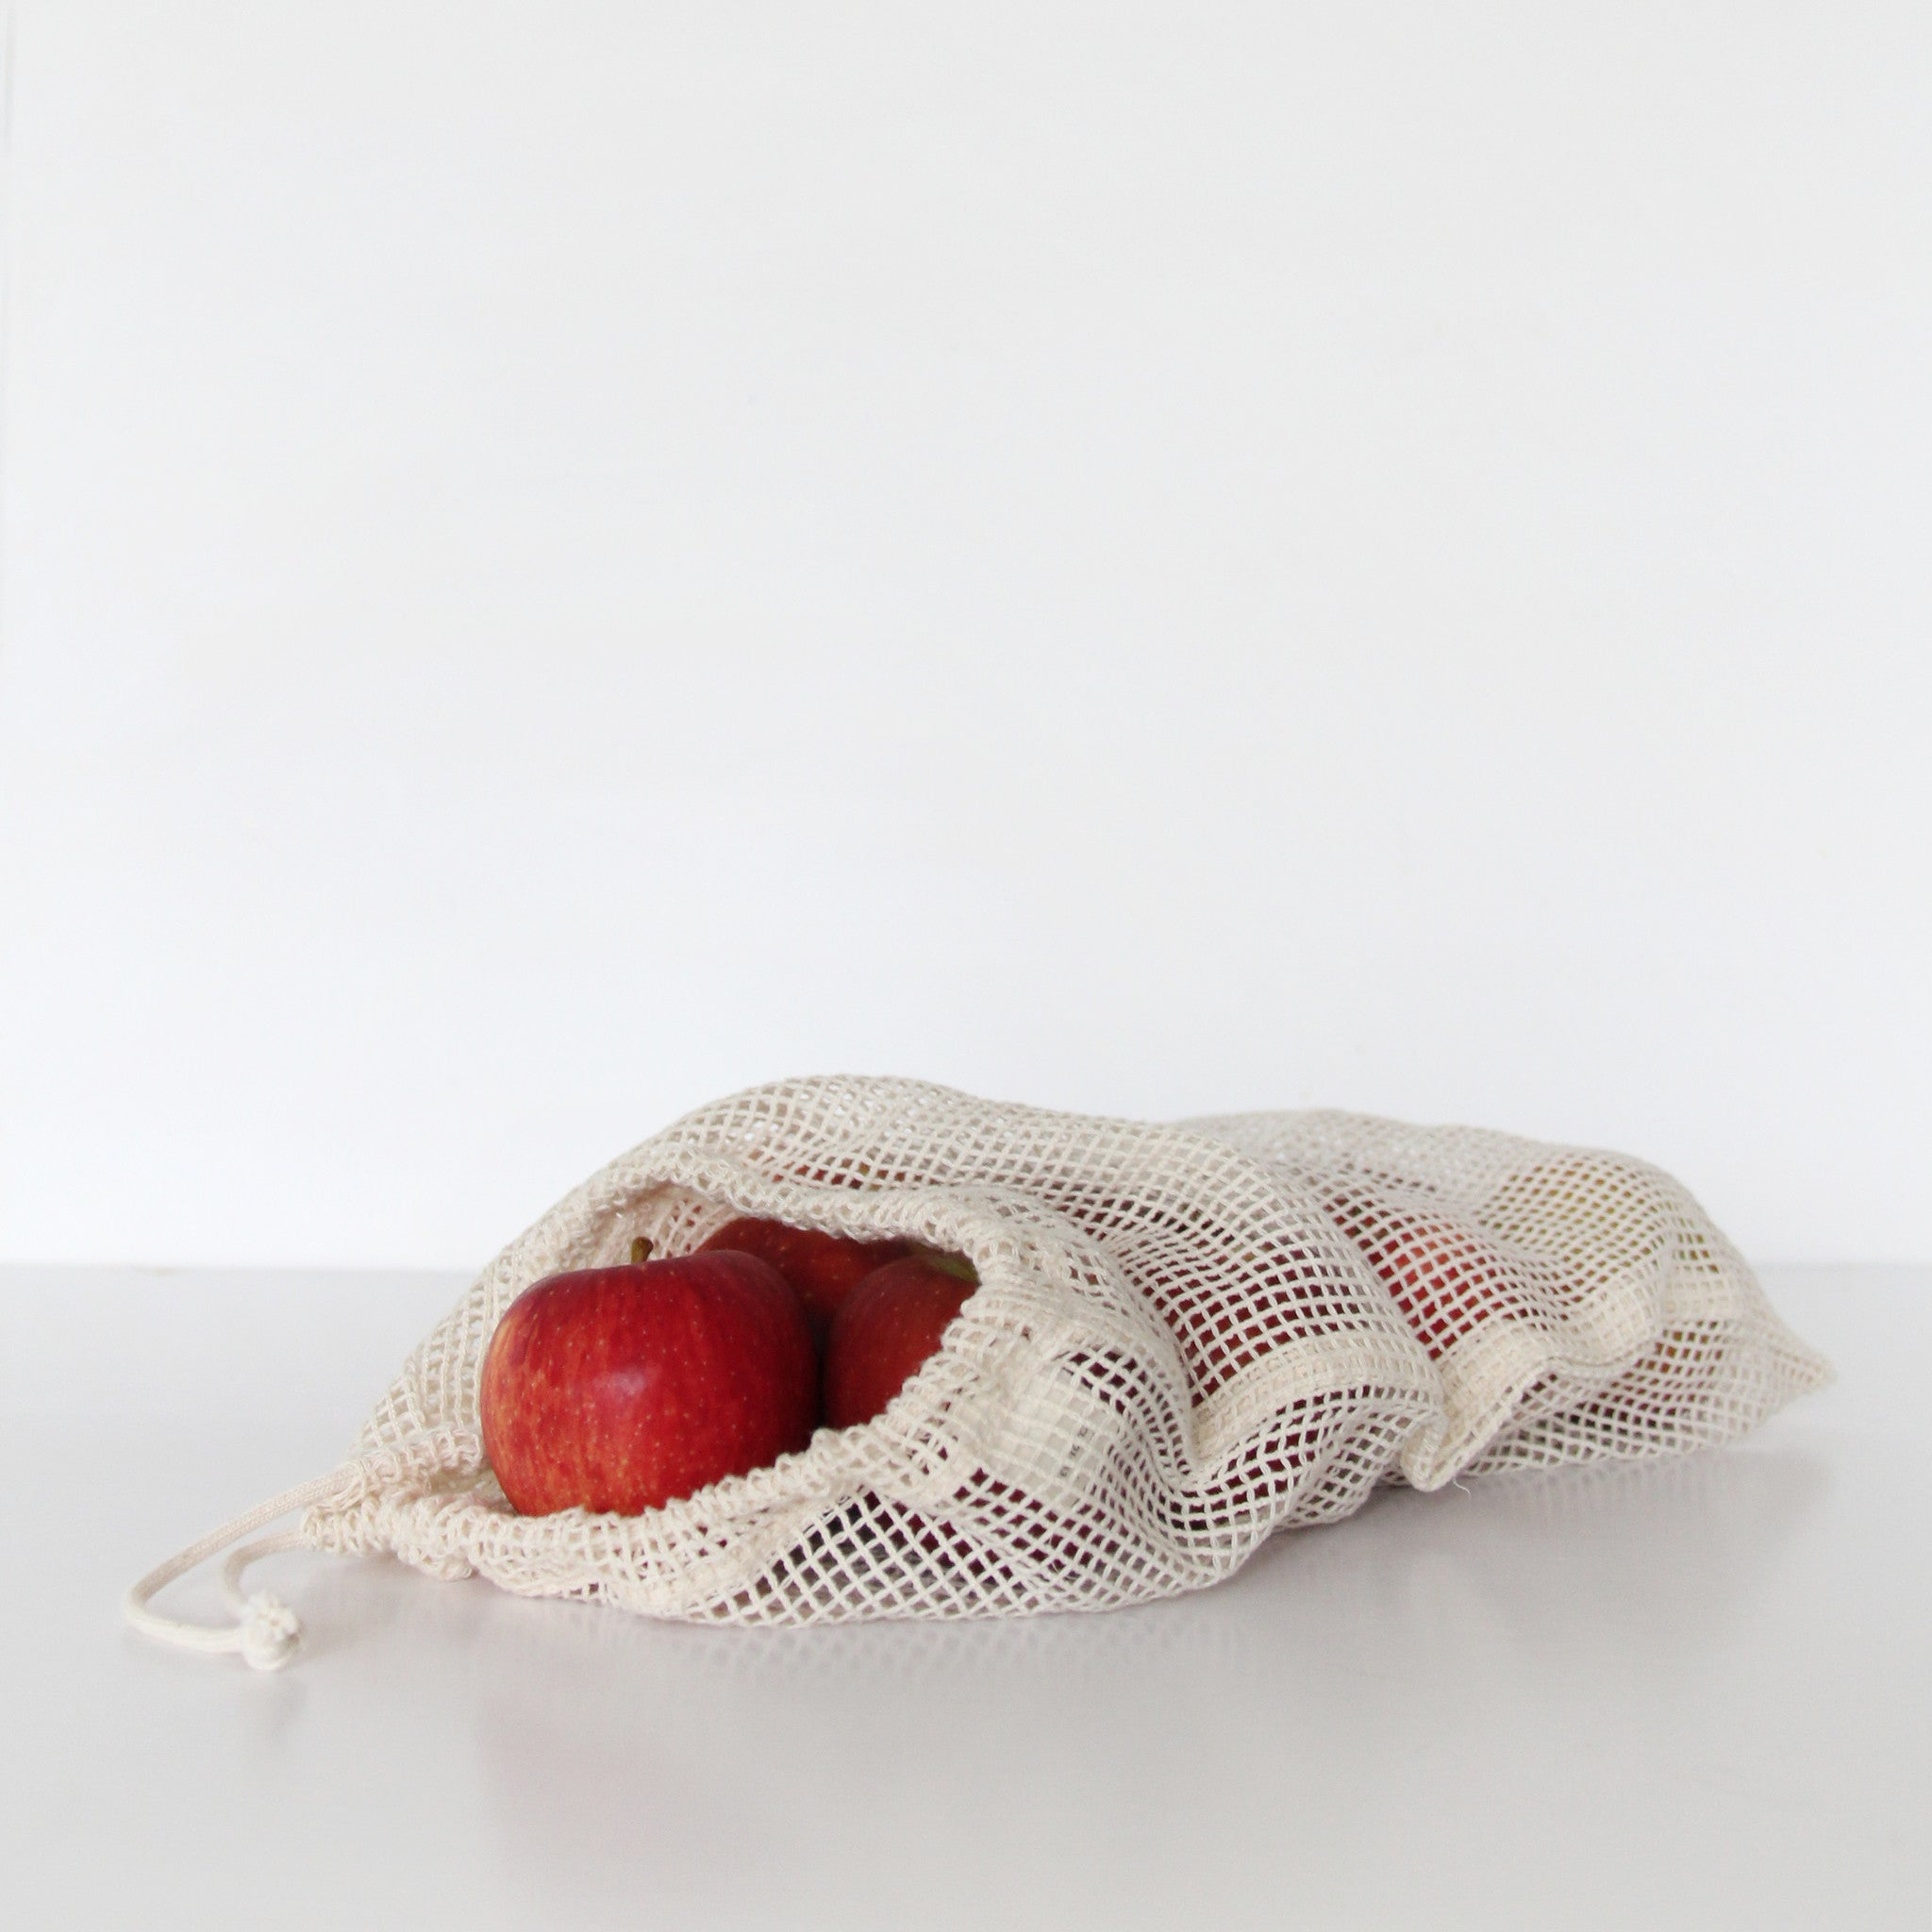 ORGANIC COTTON PRODUCE BAGS | LARGE | PACK OF 3